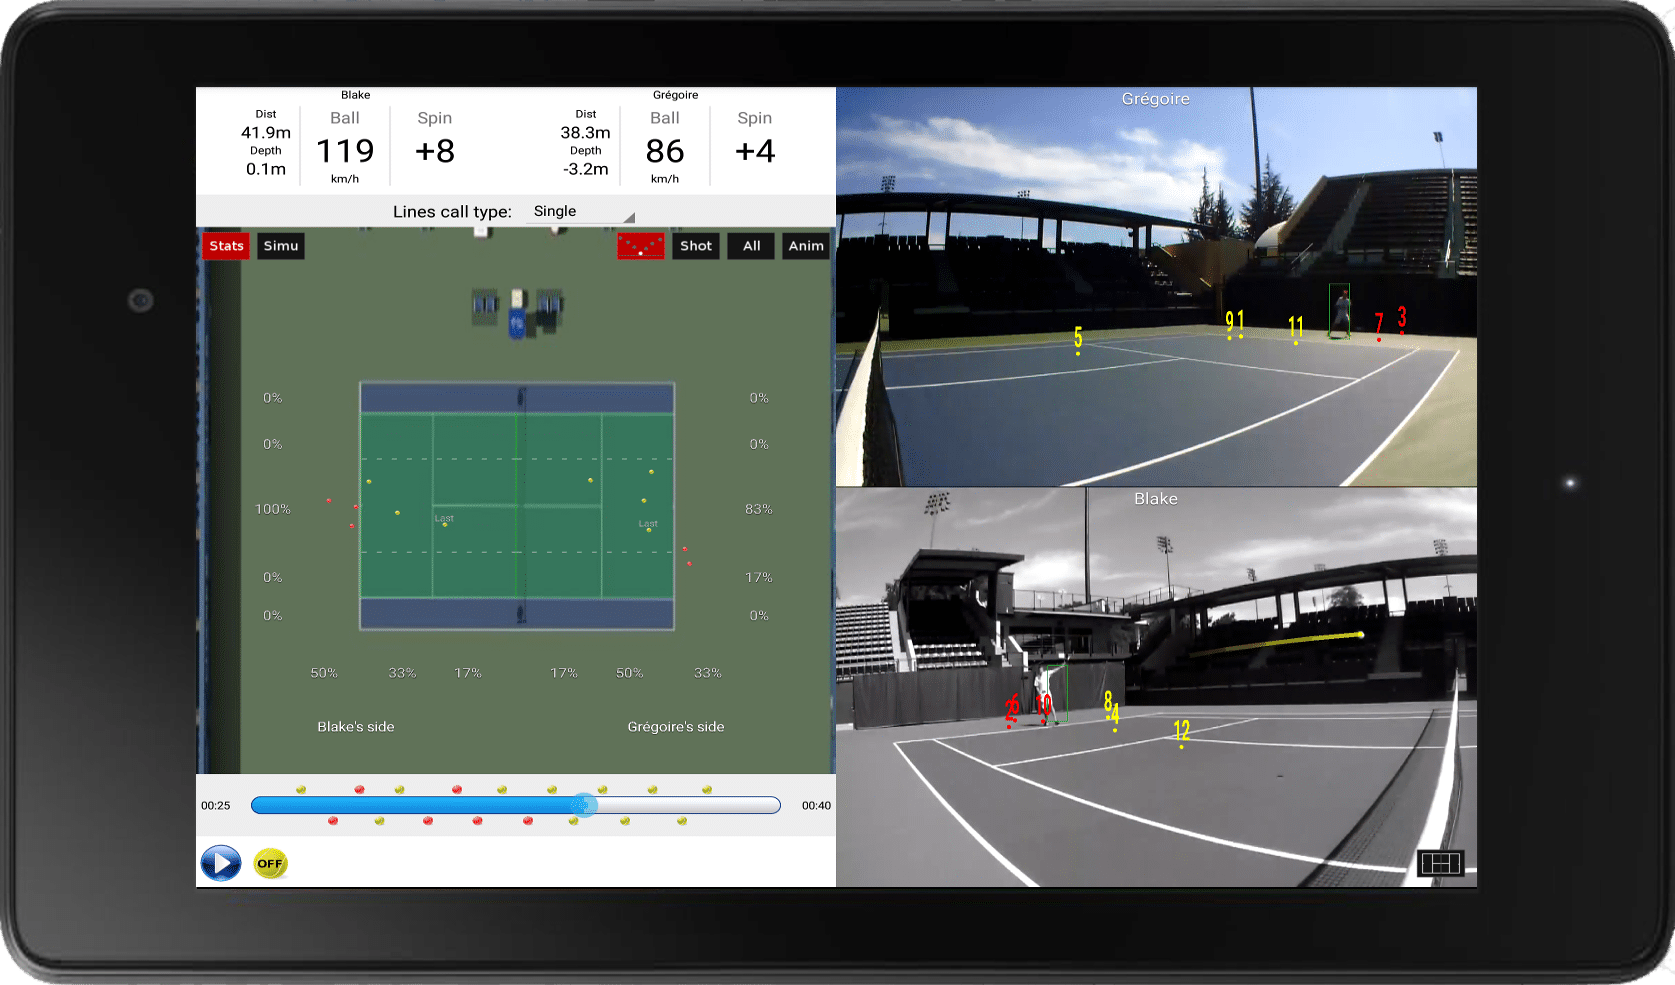 in out your personal ai line calling system and tennis coach - In/Out: your personal AI line calling system and tennis coach